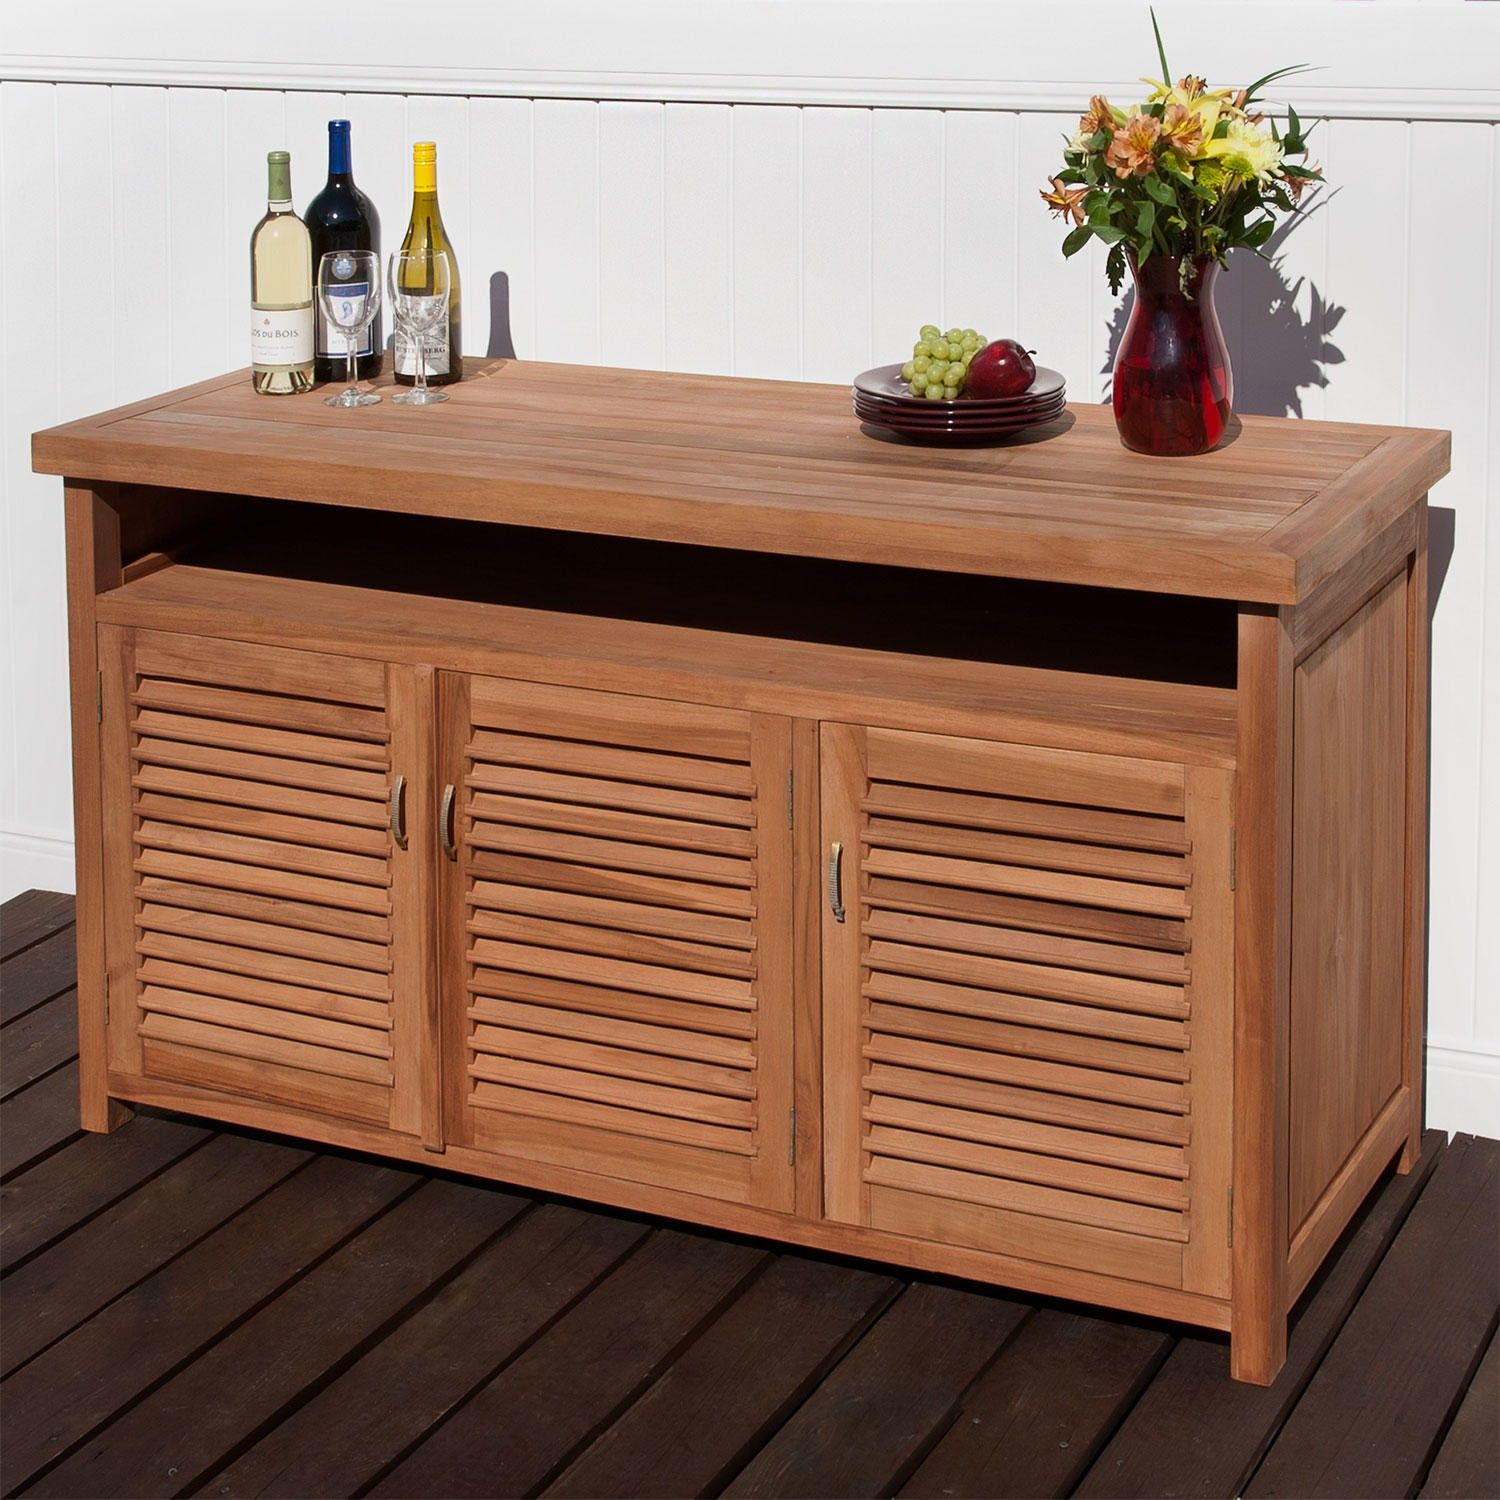 Gentil Teak Buffet With Storage Outdoor Buffet Tables, Wood Buffet, Buffet Cabinet,  Cabinet Ideas